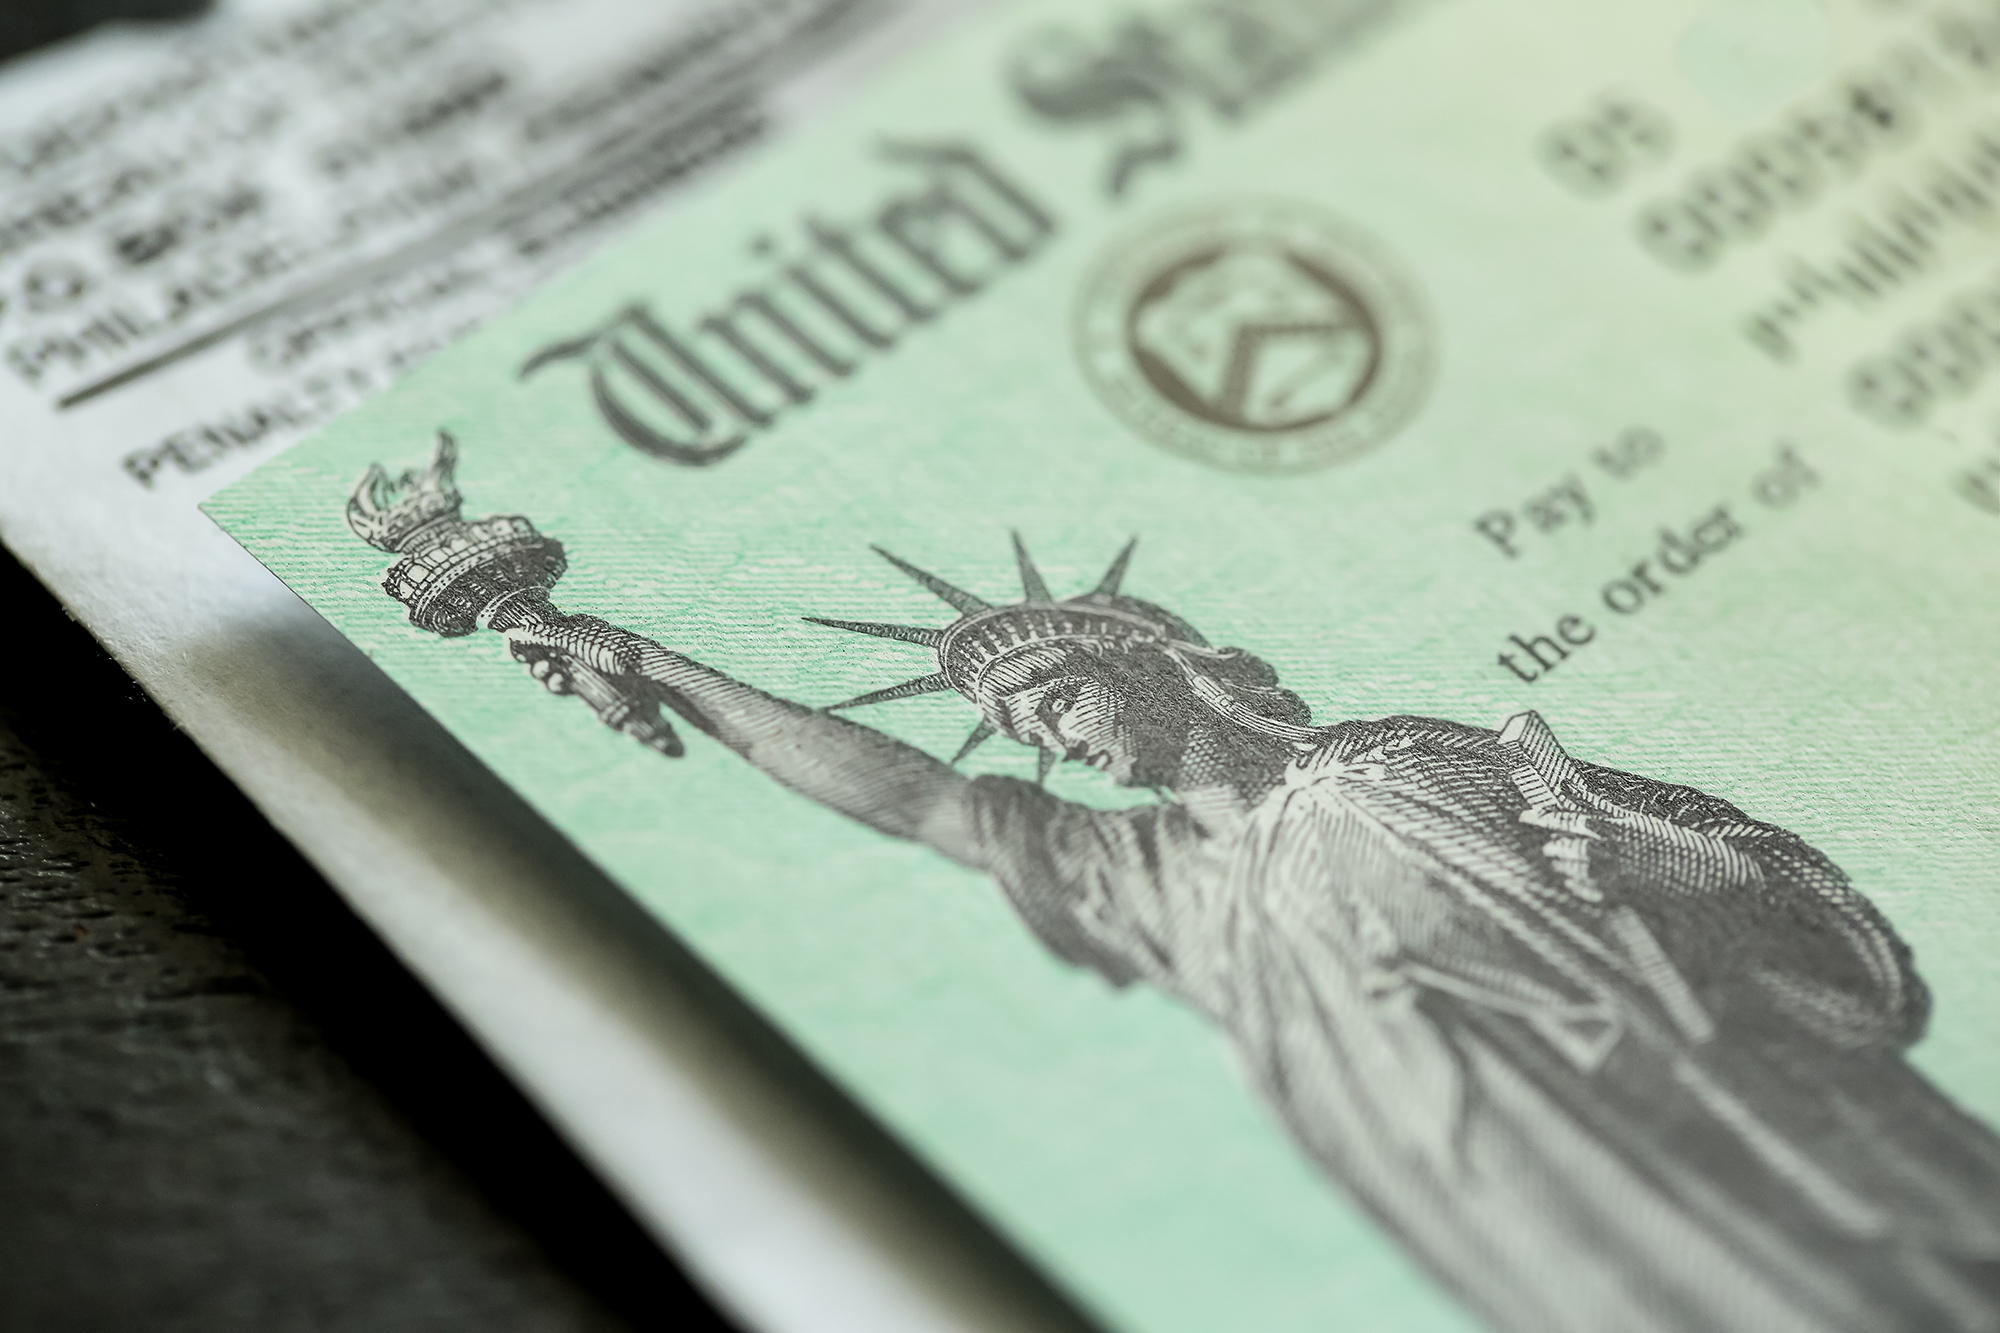 No, there is no fourth stimulus check on the way